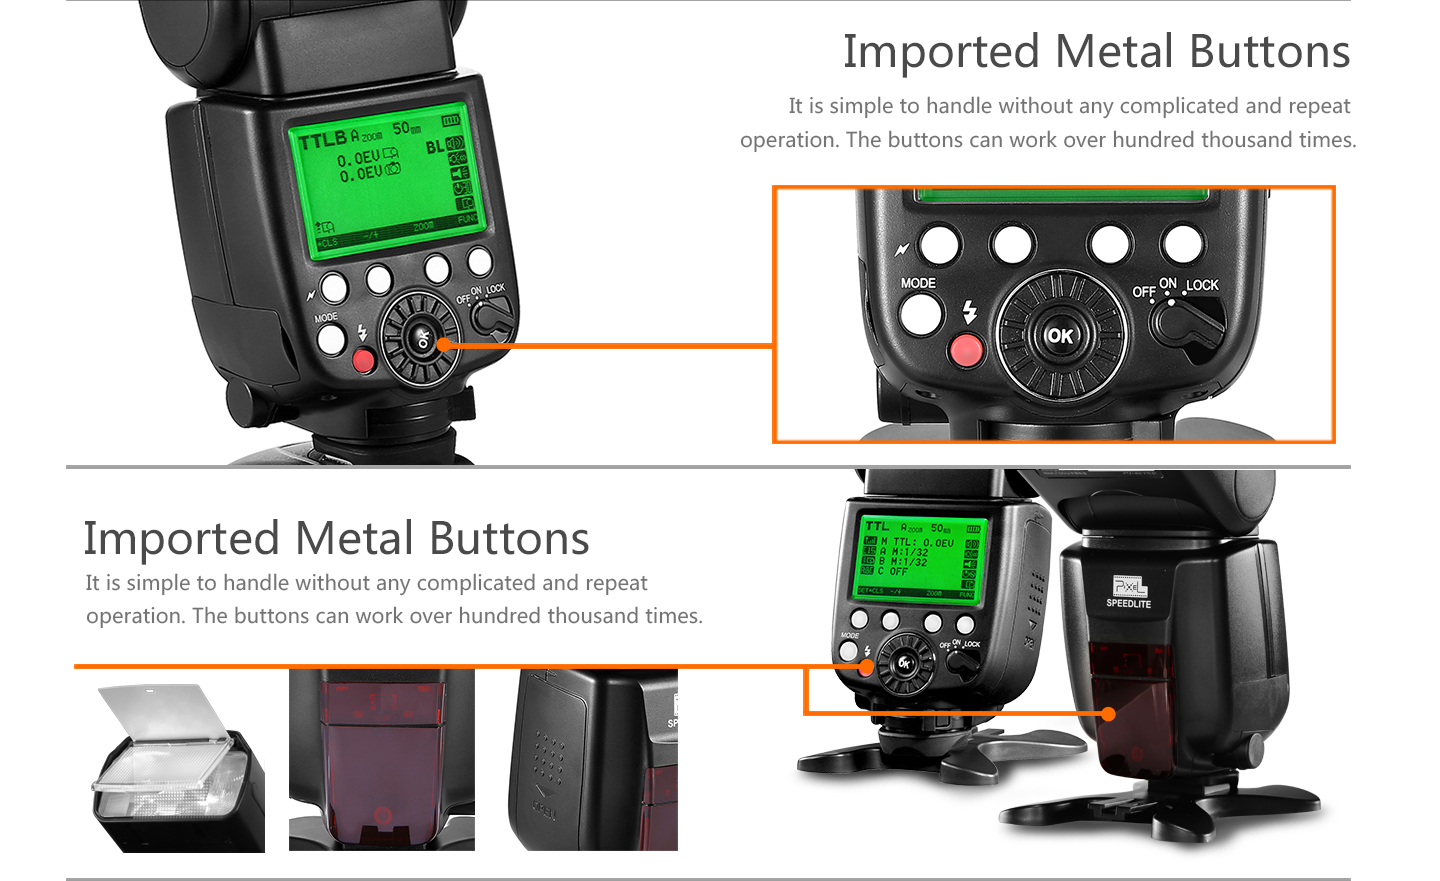 Imported Metal Buttons lmports Metal Buttons